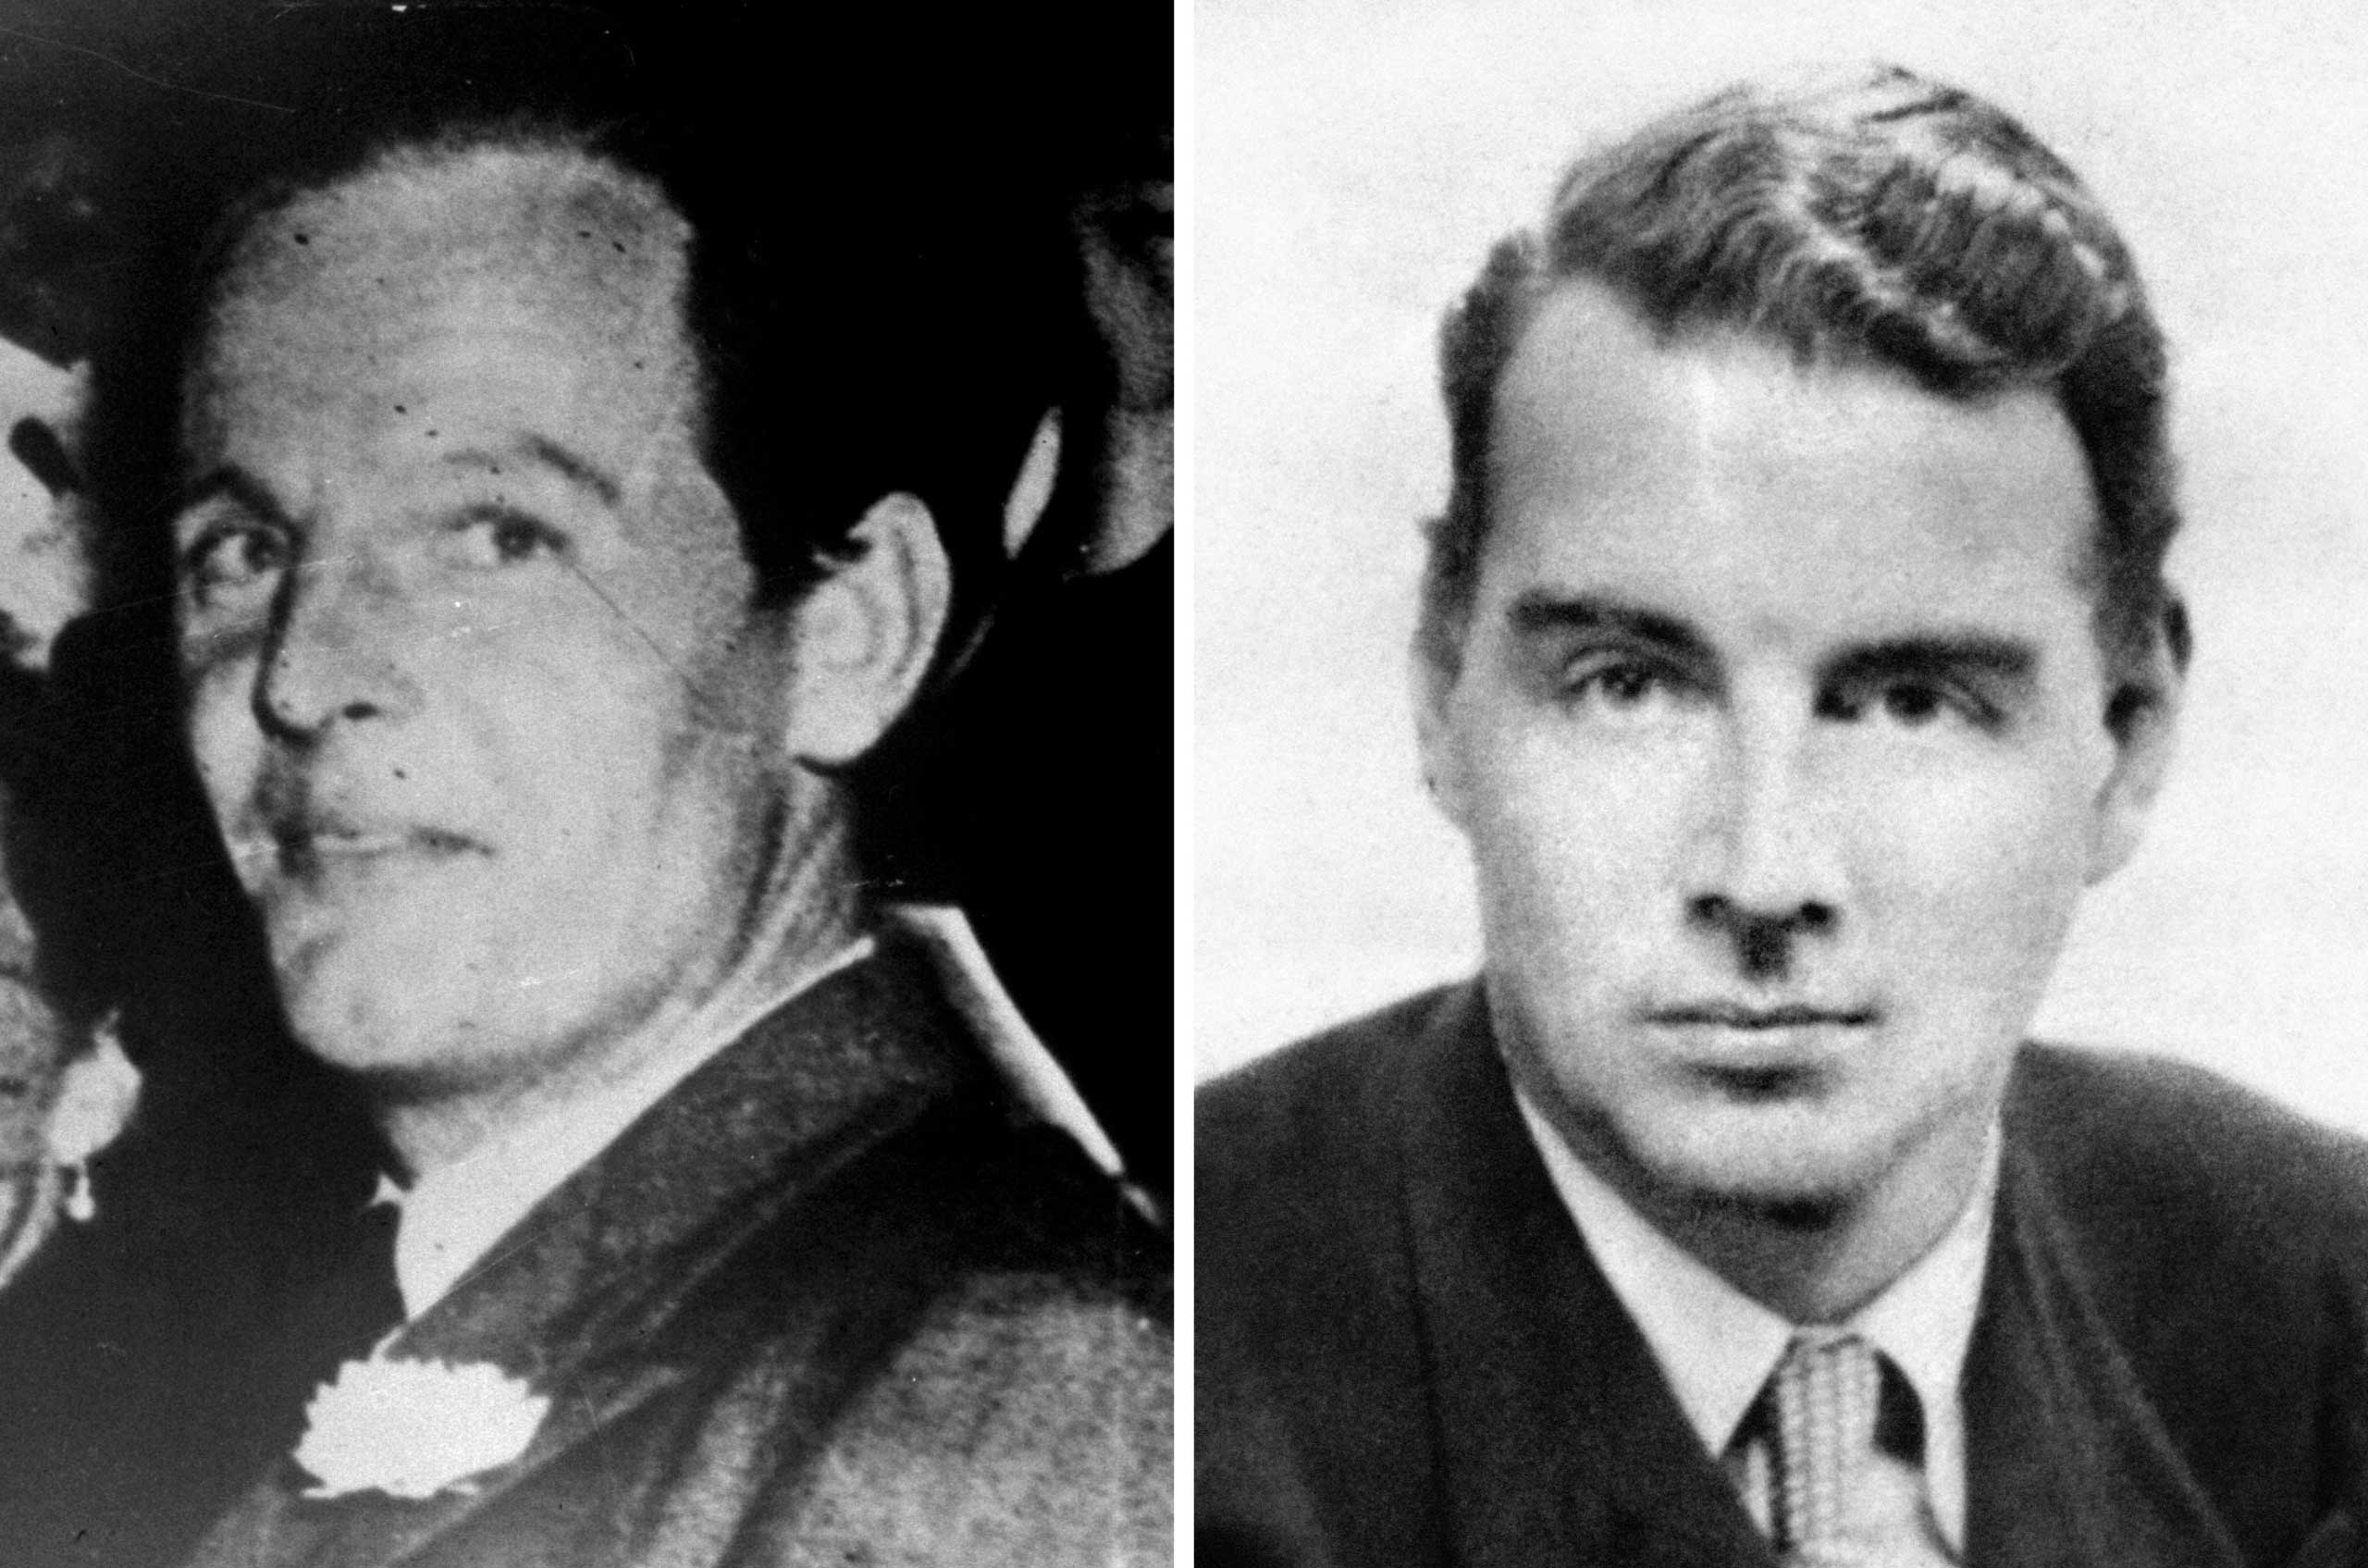 Soviet spies Donald Maclean (left) and Guy Burgess, as official files made public for the first time reveal that Kim Philby made desperate attempts to save his skin after the flight of his fellow Soviet spies, Oct. 23, 2015.